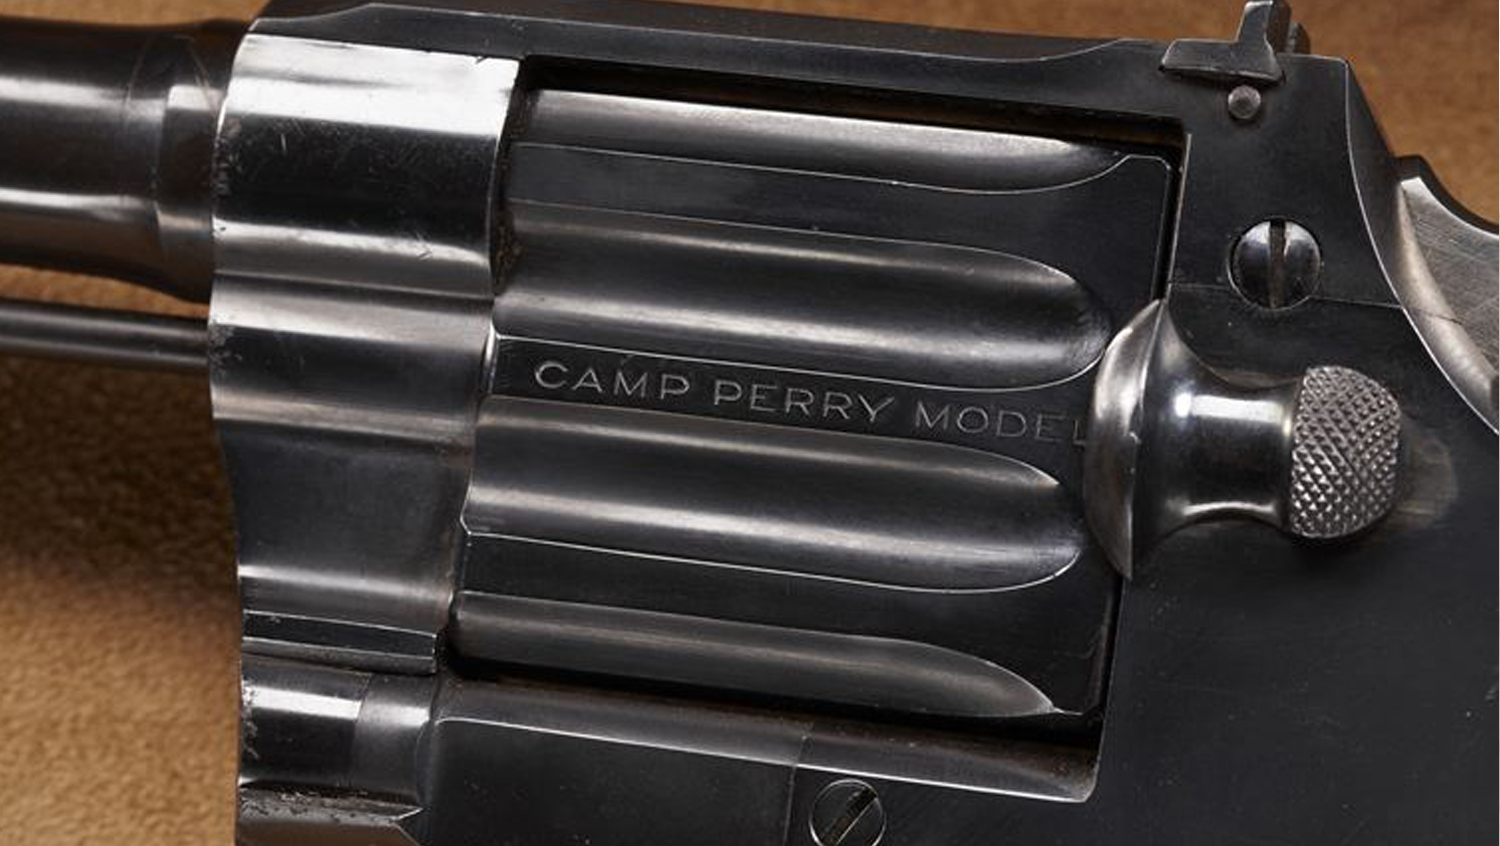 History in a Handgun: Julian Hatcher's Colt Camp Perry Pistol